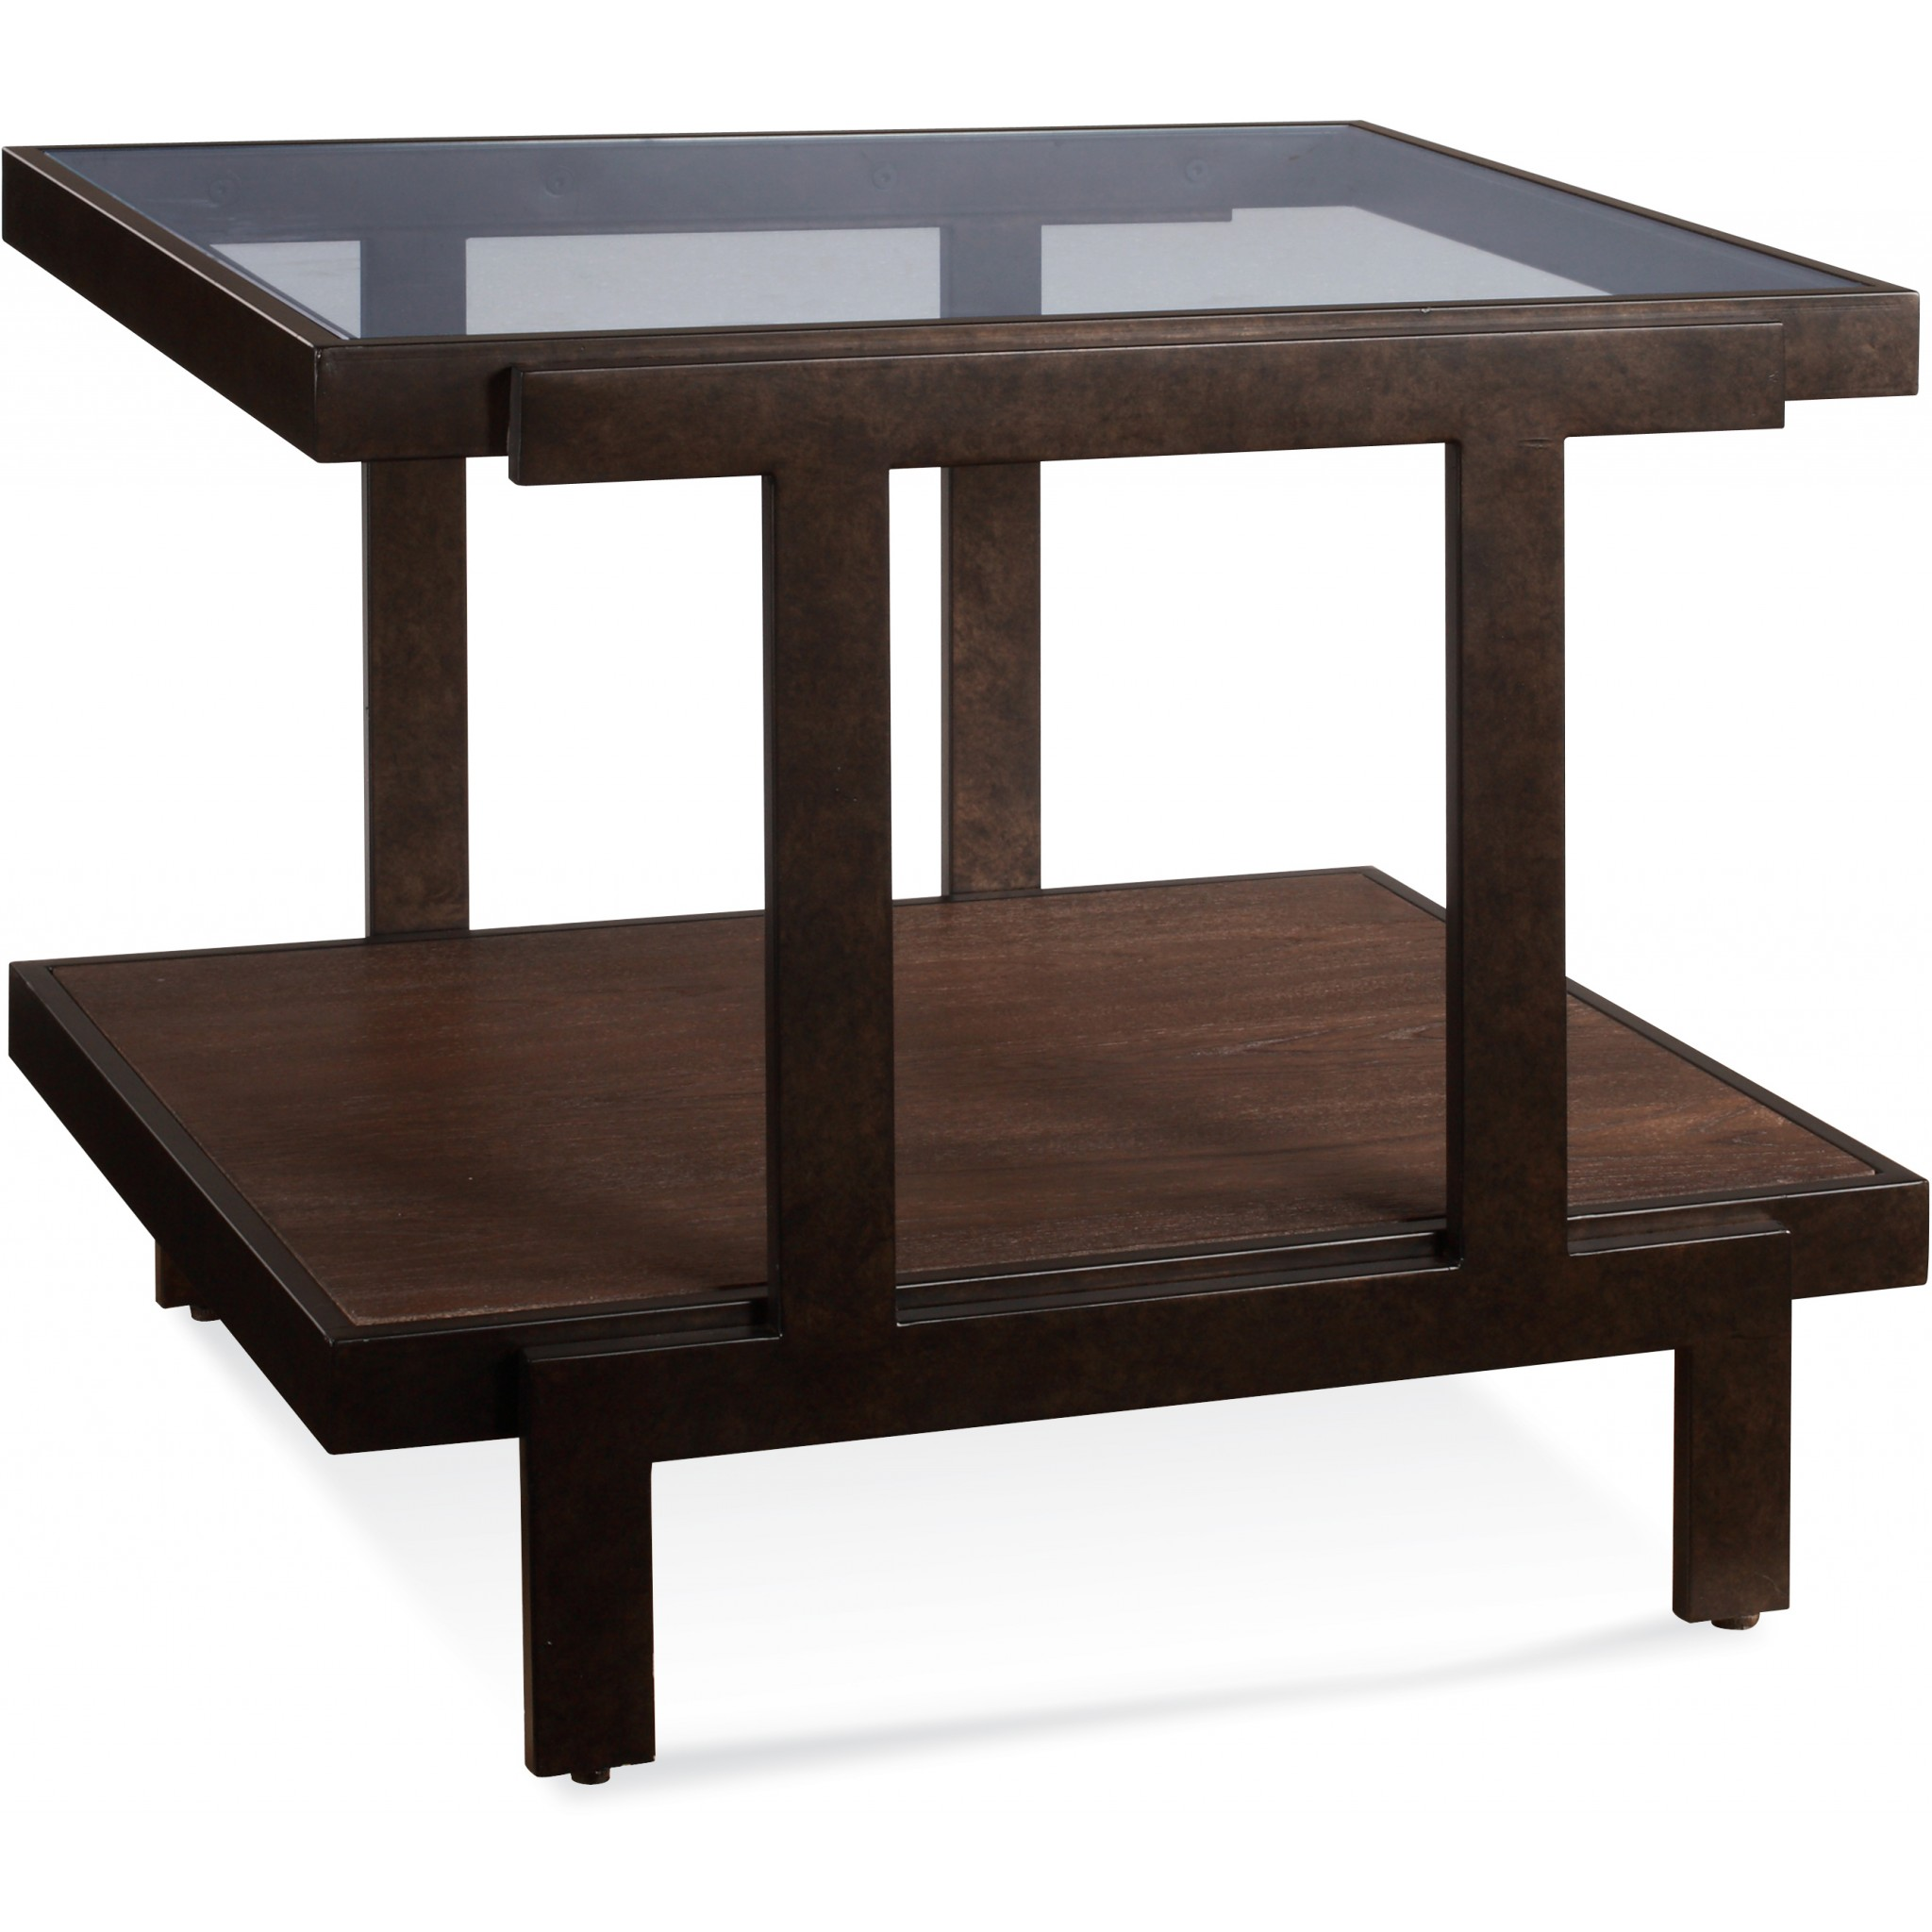 Bassett Mirror Beasley Rectangle End Table - Item Number: 2875-200